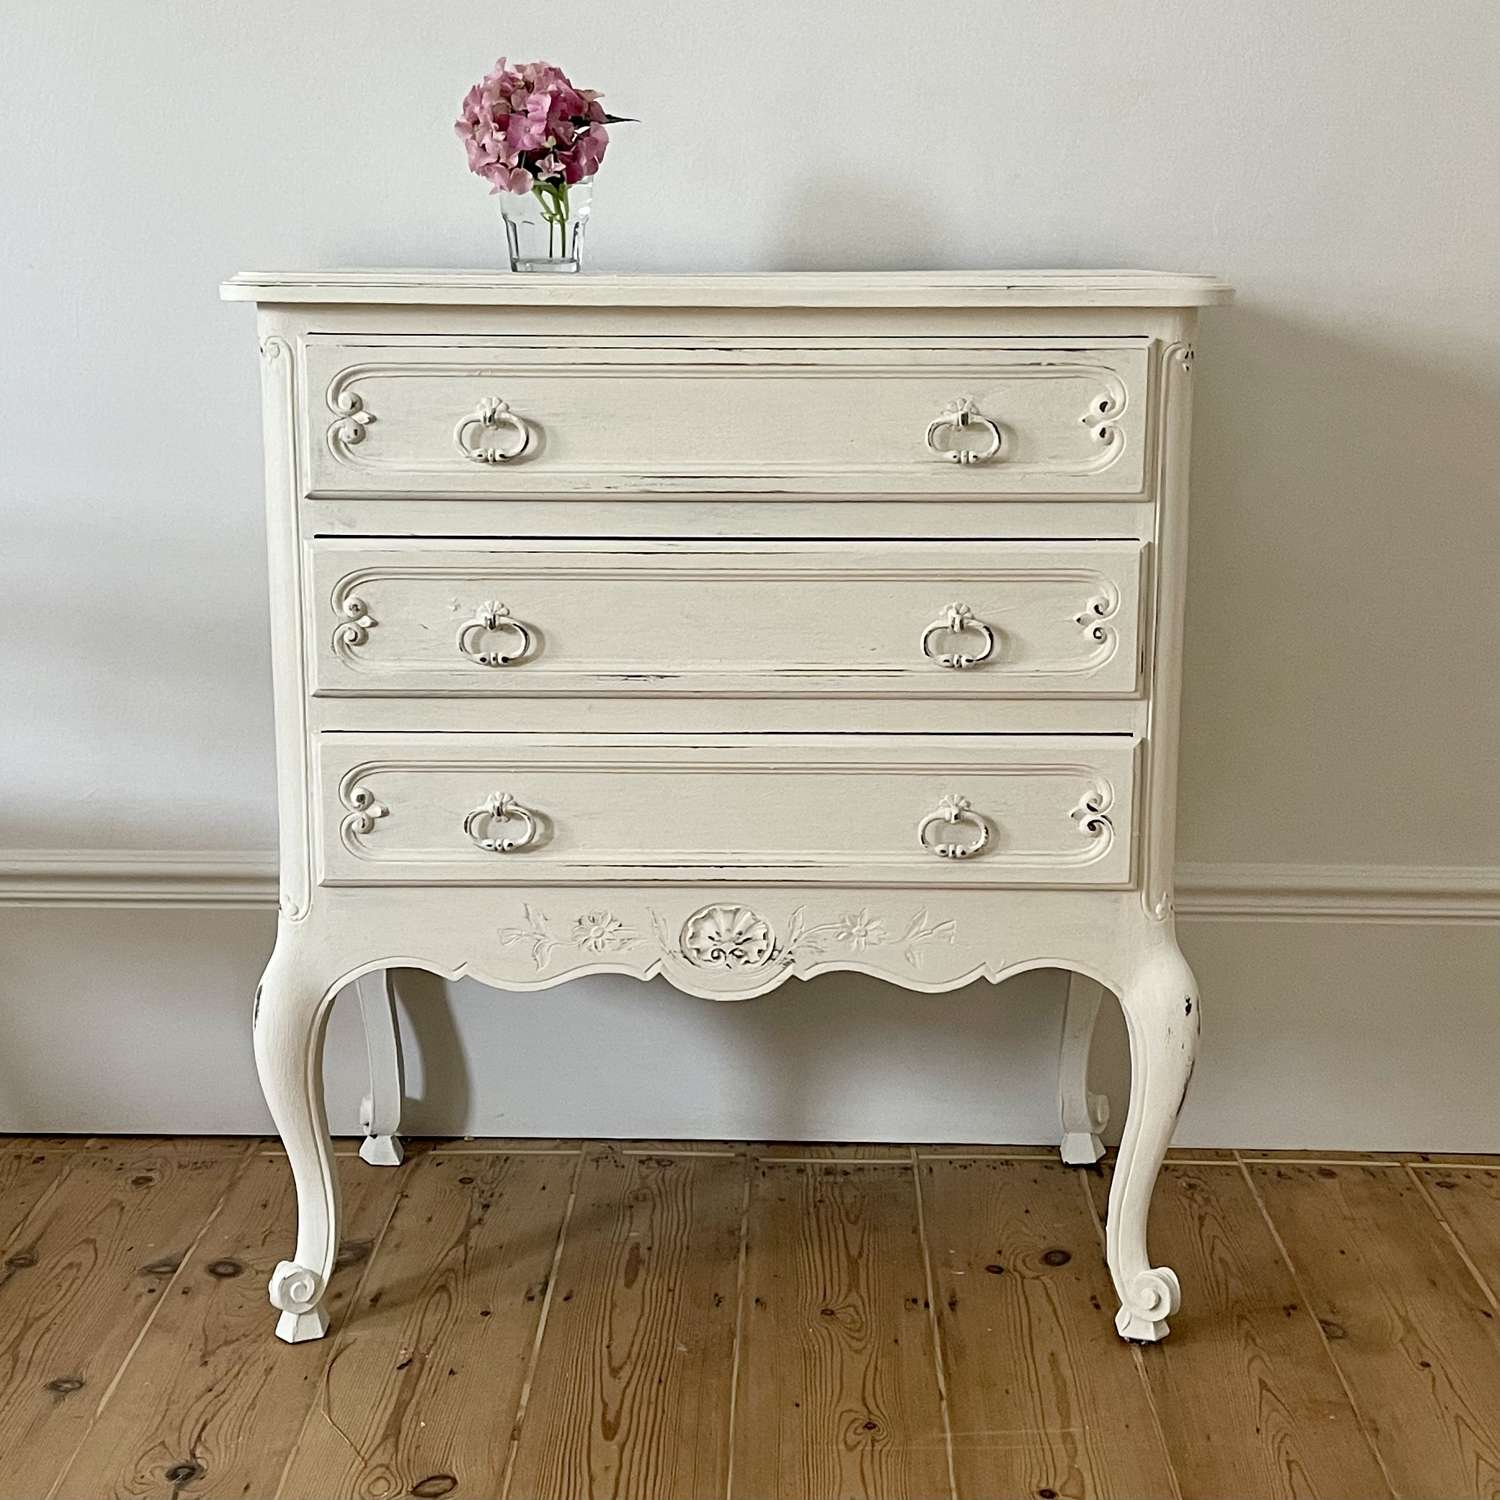 Antique French Louis XVI chest of drawers